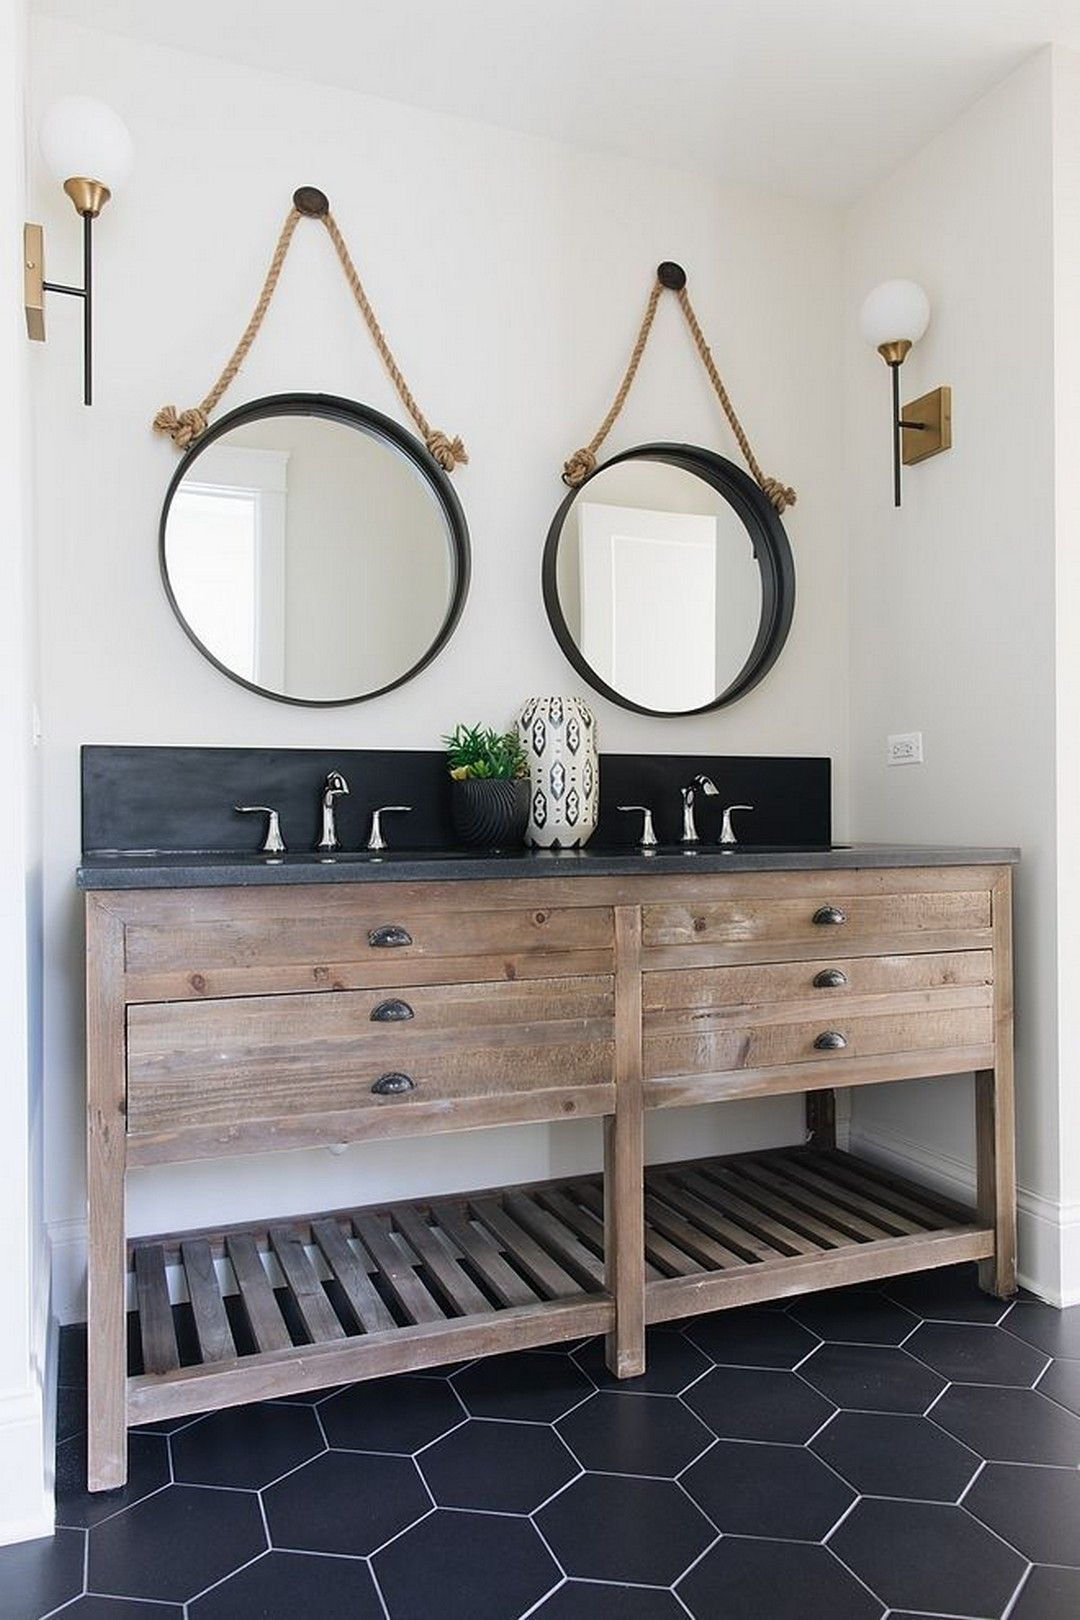 28 Farmhouse Decorations Style to Upgrade Your Bathroom ...